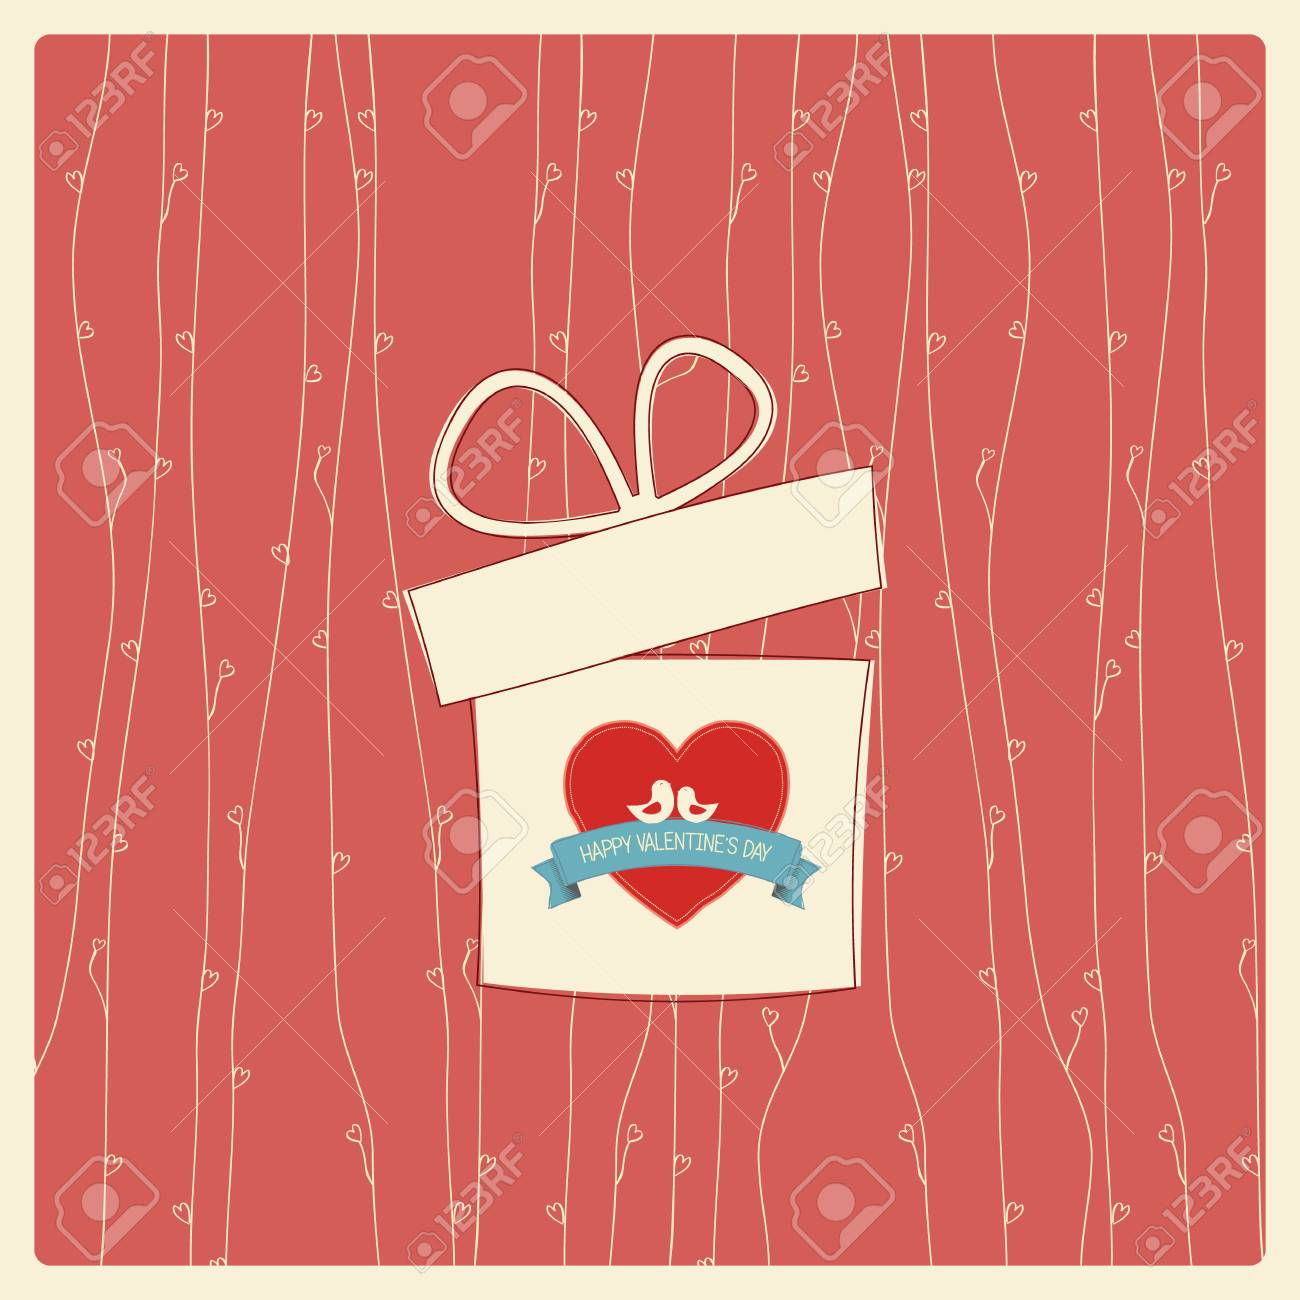 Vintage Valentine\u0027s day card with soft colors and simple hand..